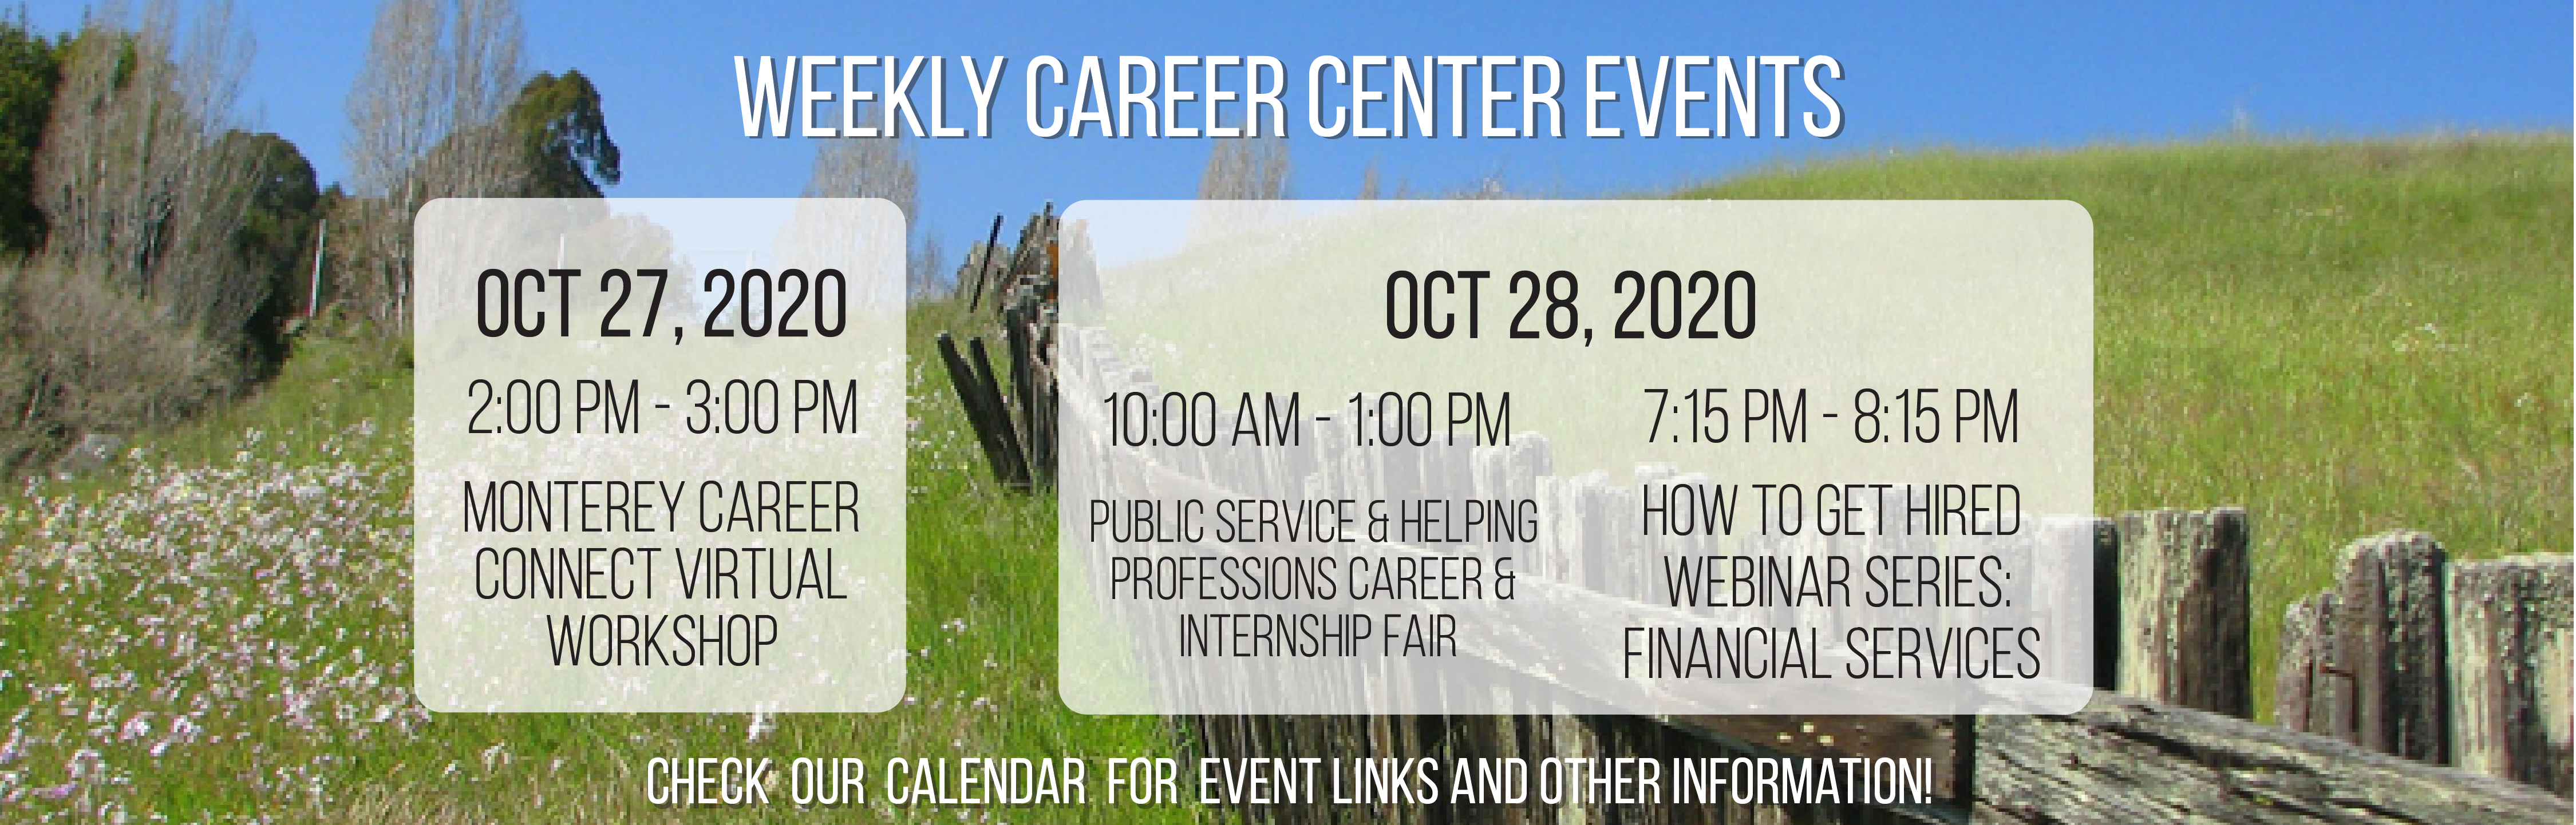 Weekly Career Center Events. Oct 27, 2020: 2:00pm-3:00pm, Monterey Career Connect Virtual Workshop. Oct 28, 2020: 10:00am-1:00pm, Public Service & Helping Professions Career & Internship Fair; 7:15pm-8:15pm, How To Get Hired Webinar Series. Check our calendar for event links and other information!